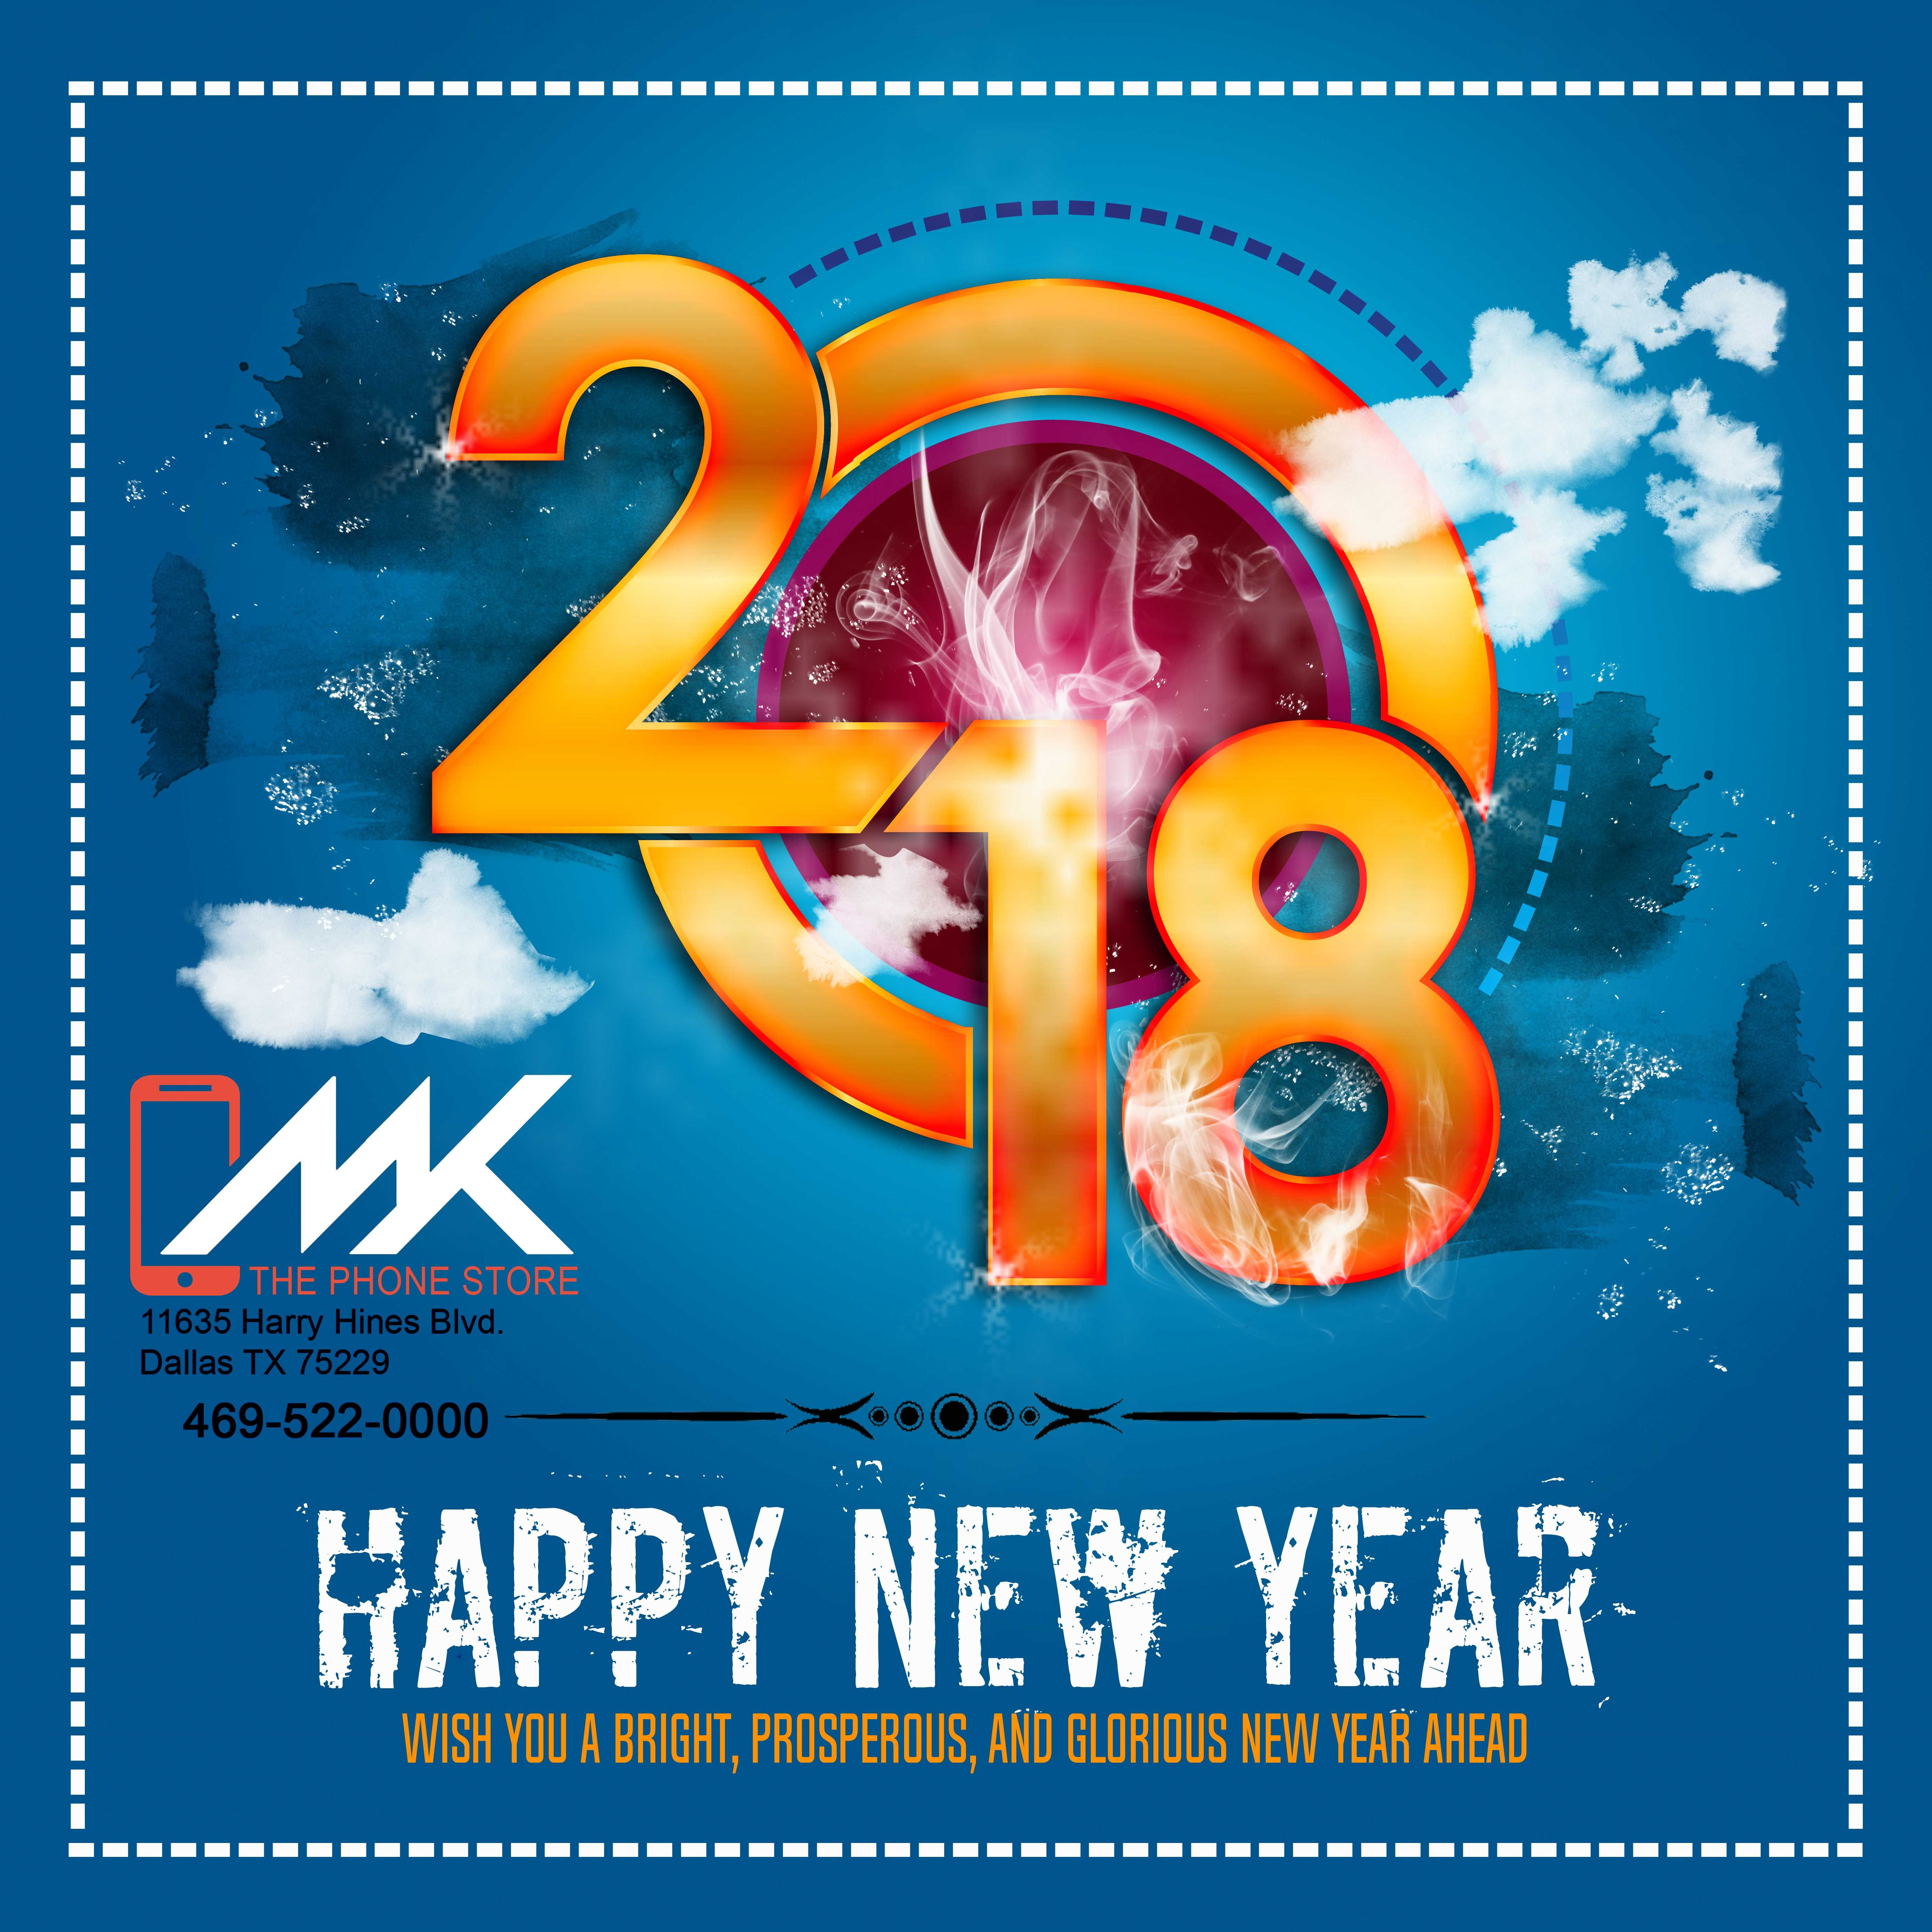 happy new year 2018 happy new year logo backgrounds free psd templates